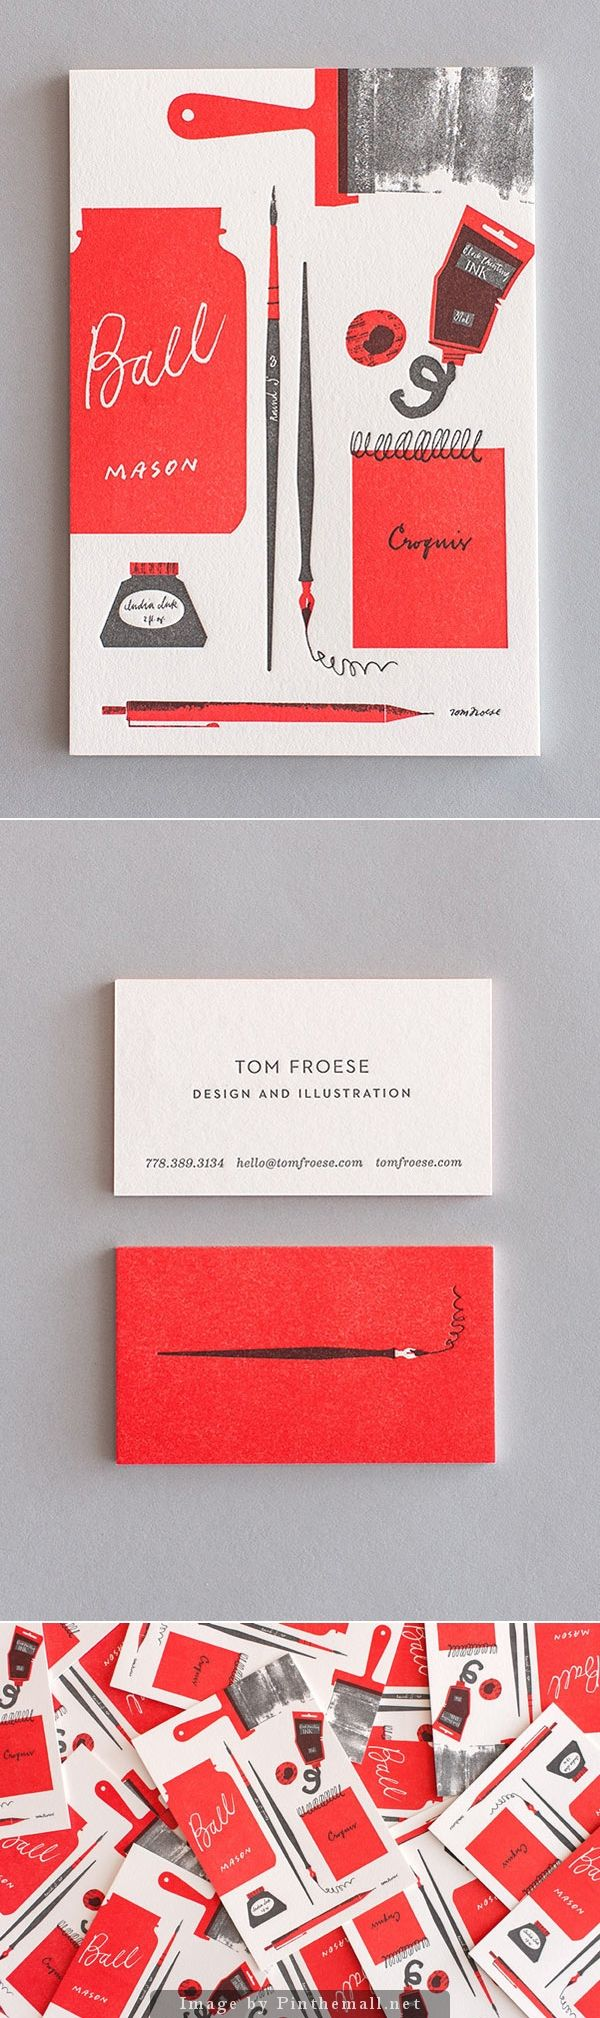 Tom Froese's Illustrated Personal Stationery Design. Business card design